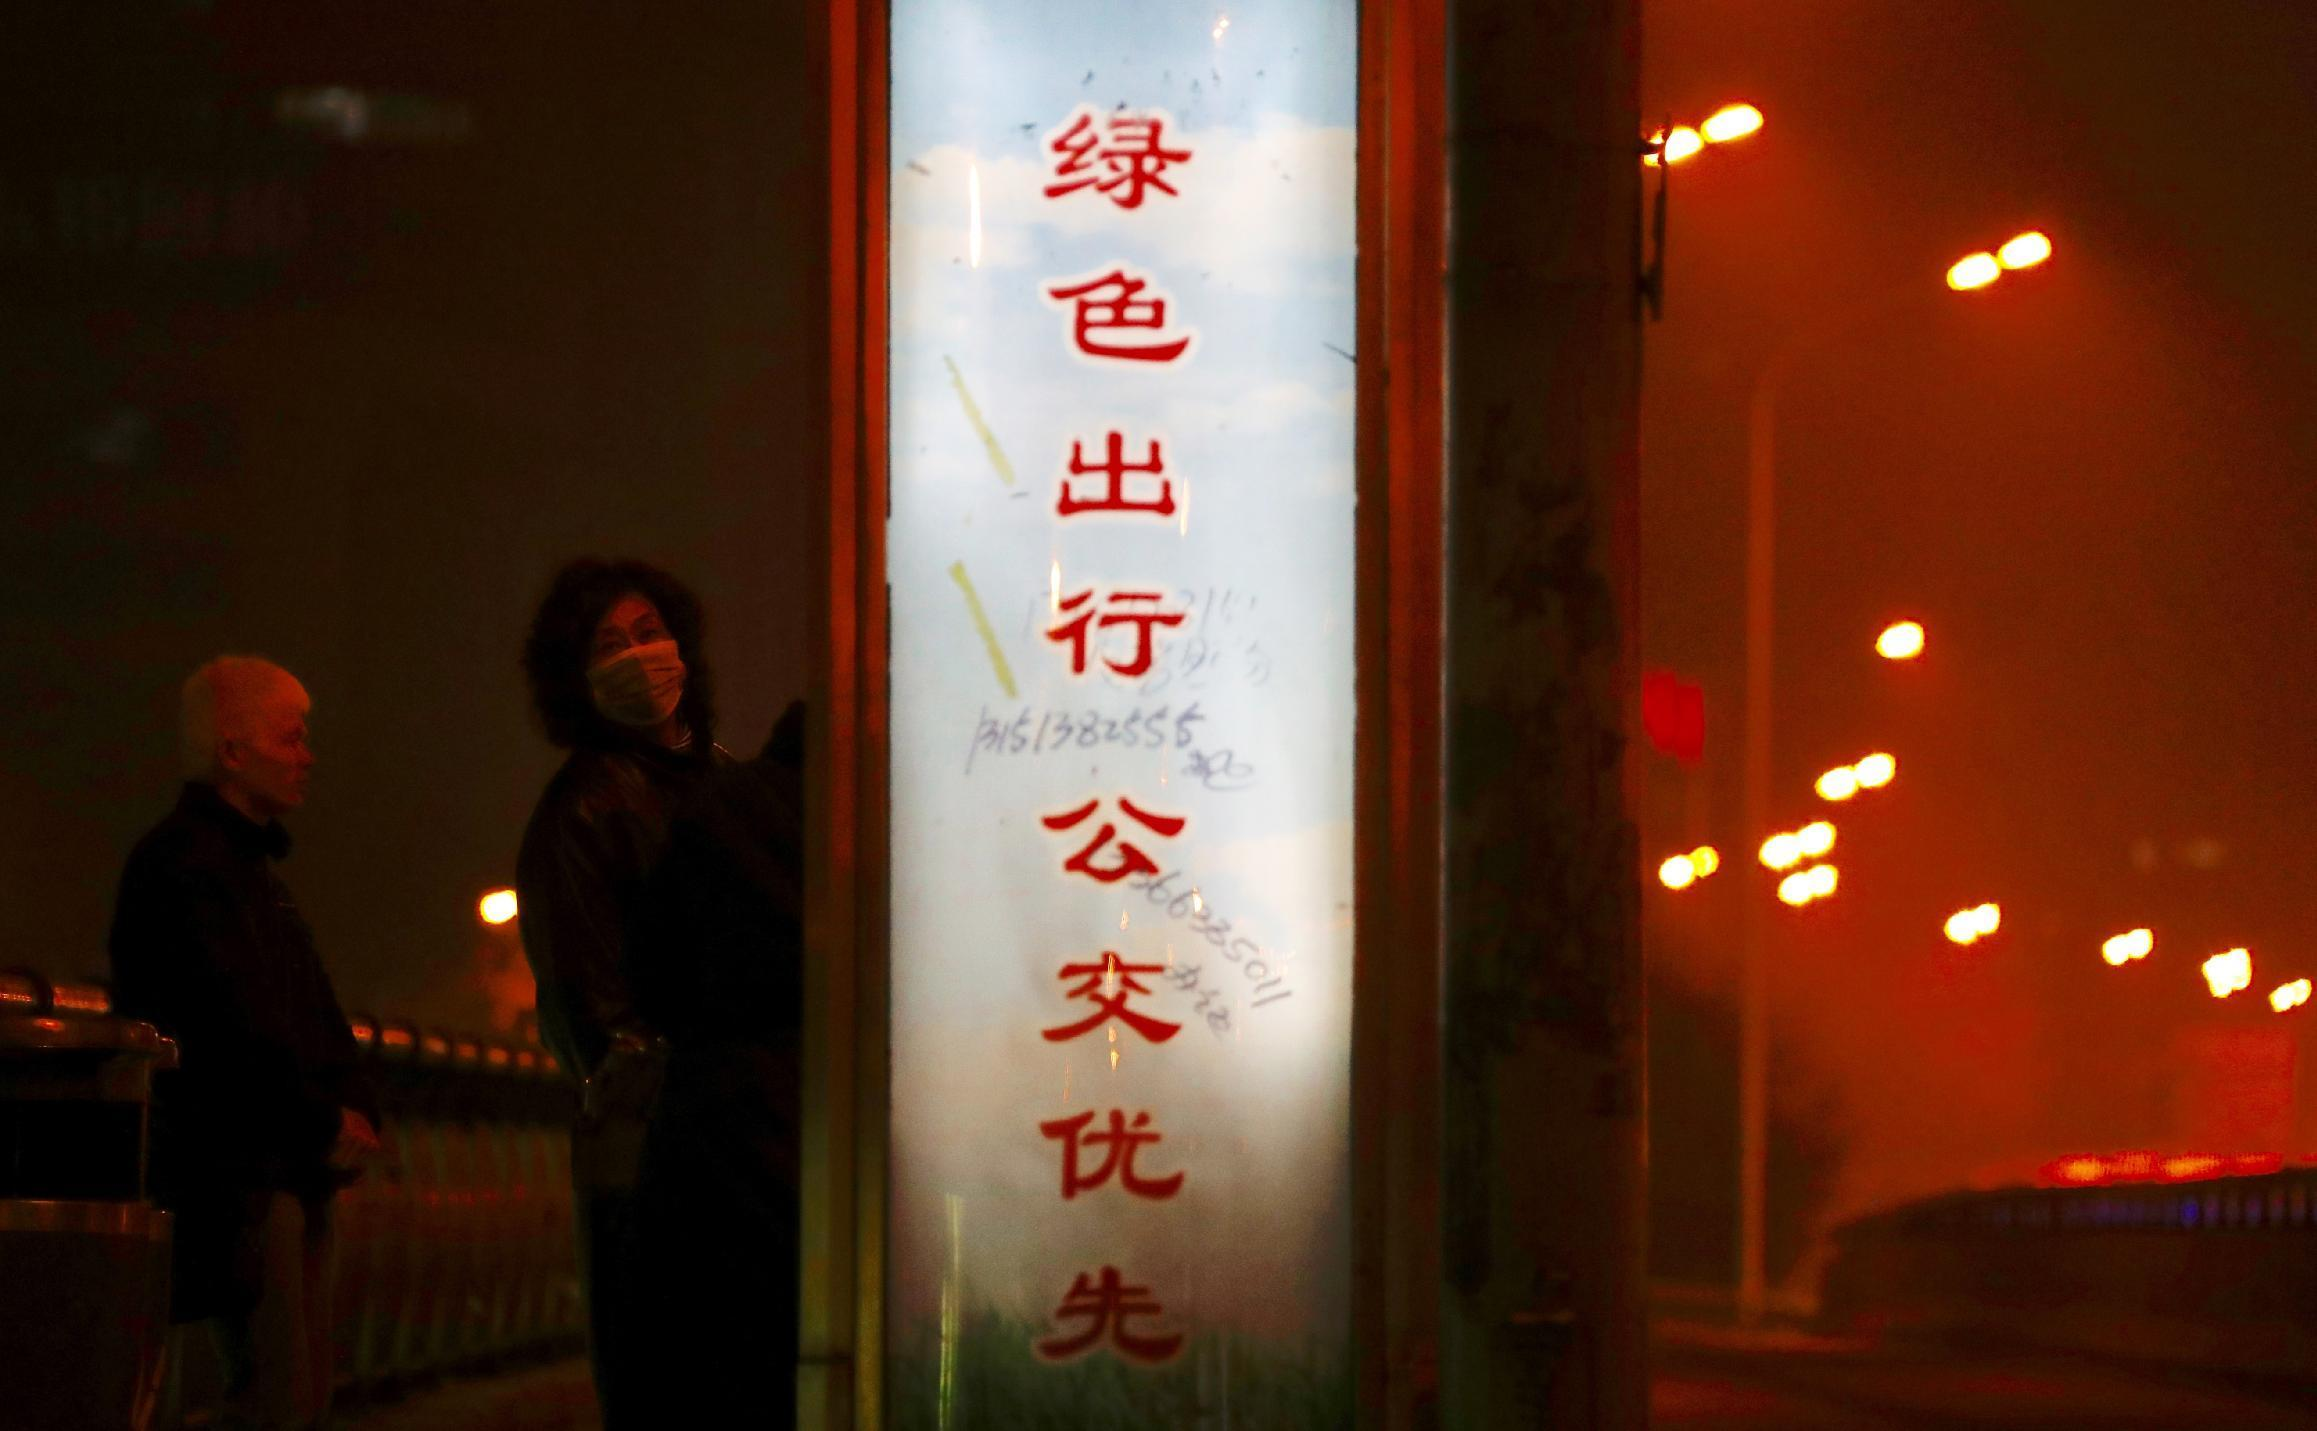 """In this Monday, Jan. 2, 2017 photo, a pedestrian wearing a mask looks back while passing by a slogan that reads: """"When you want to go out, please take a public bus"""" in Beijing. Beijing and other cities across northern and central China were shrouded in thick smog on Monday, prompting authorities to delay dozens of flights and close highways. (AP Photo/Andy Wong, File)"""